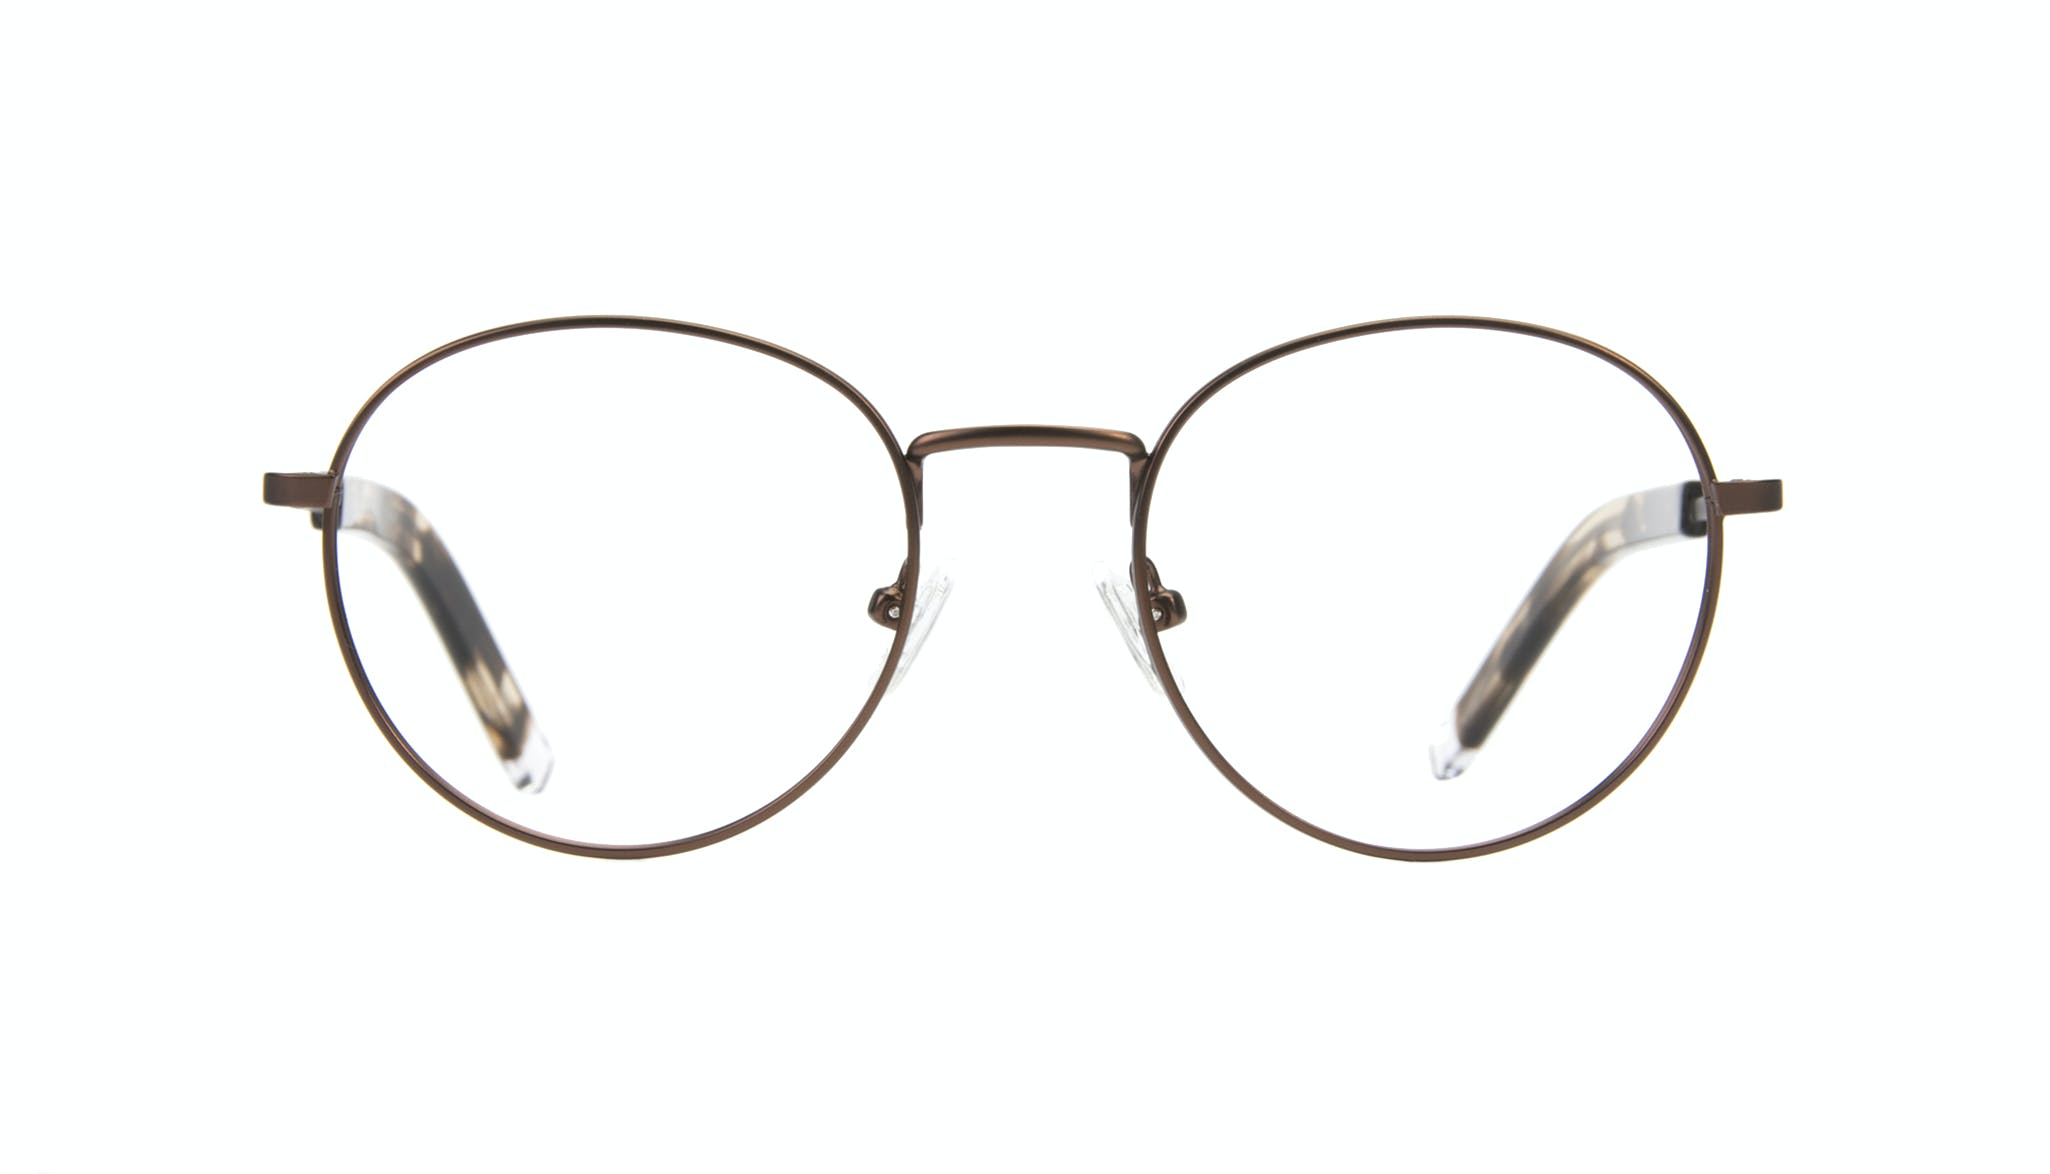 Affordable Fashion Glasses Round Eyeglasses Men Lean Mud